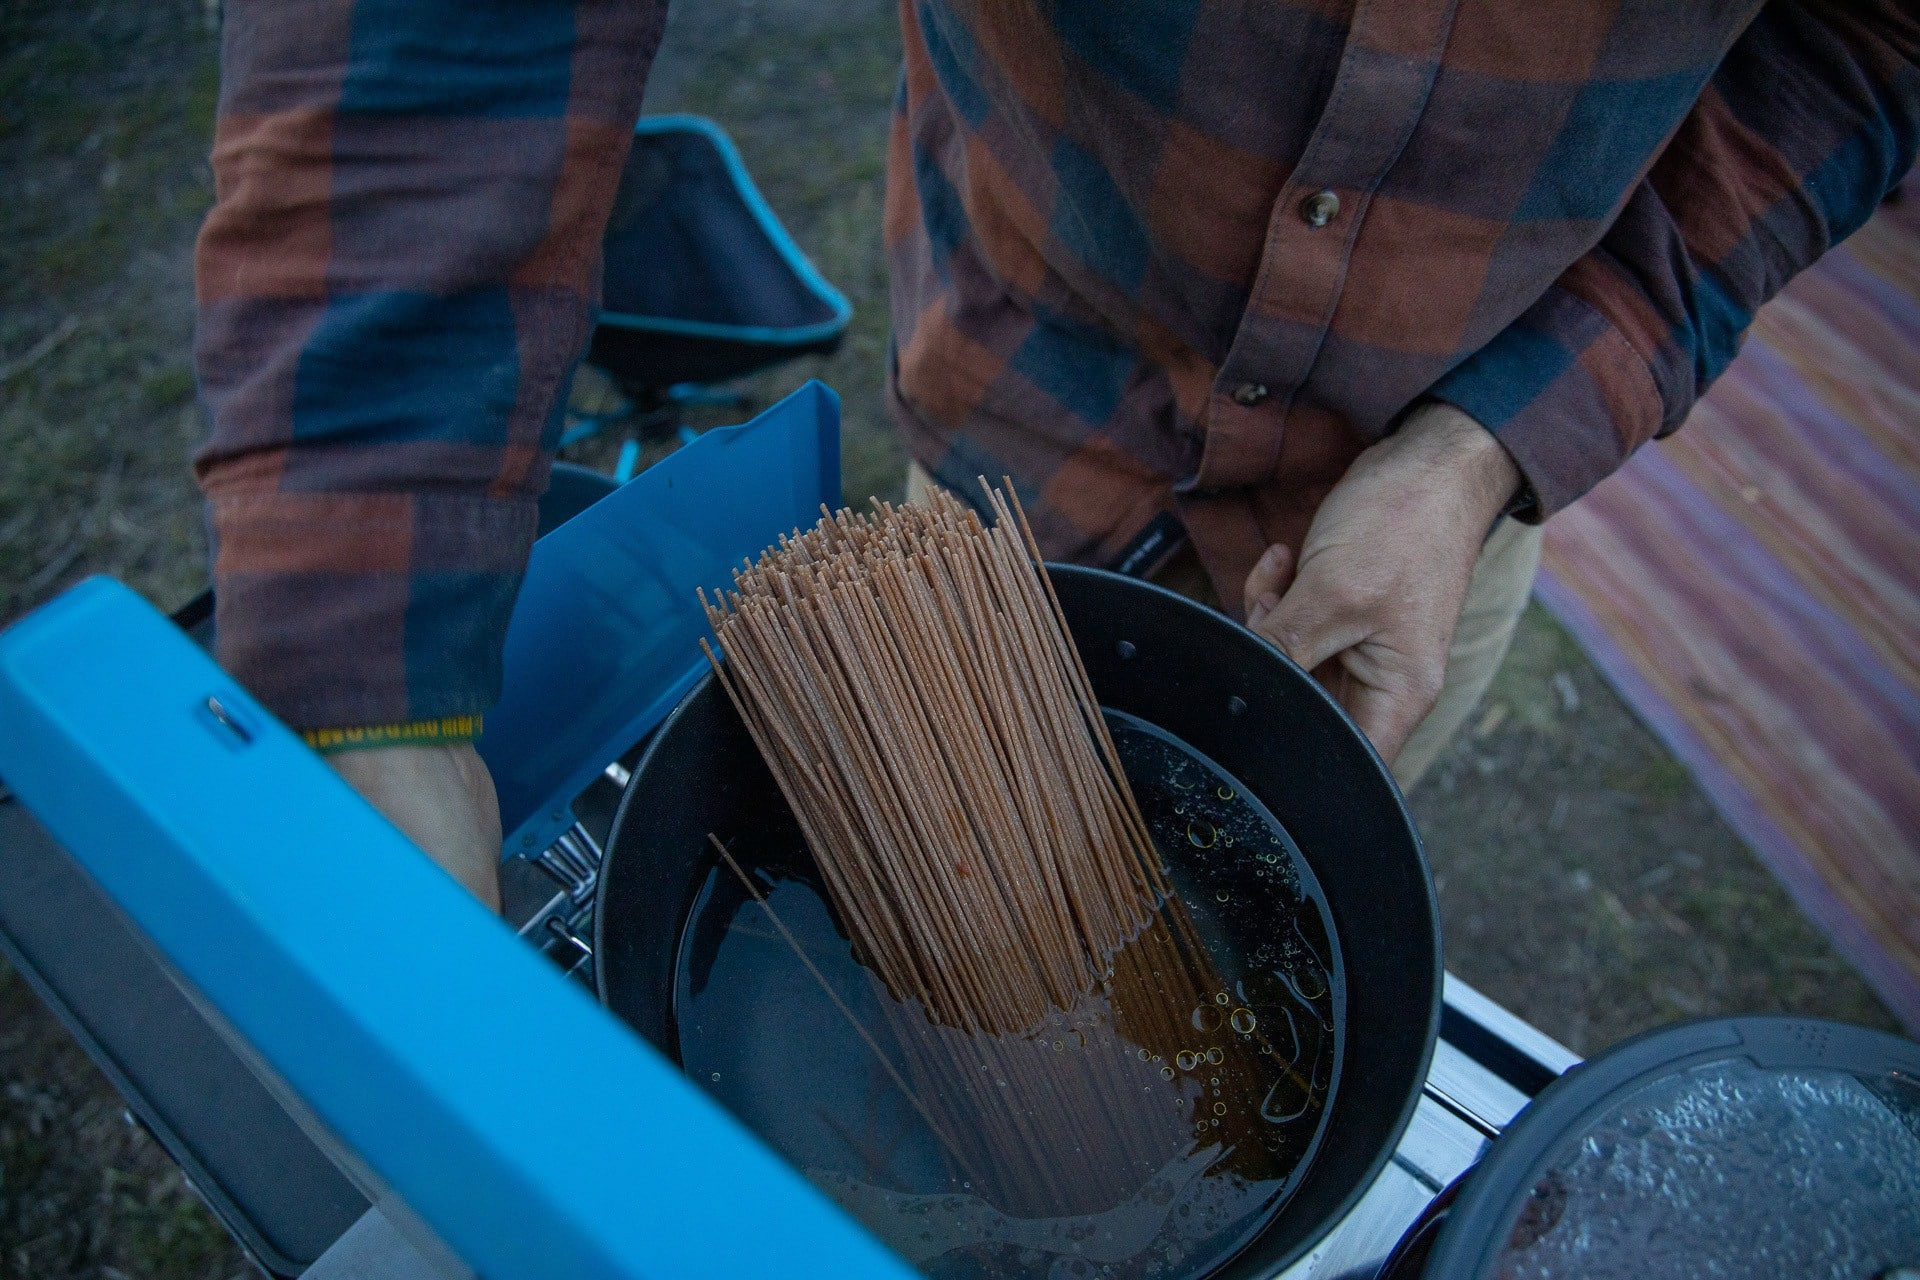 GSI Cookset // Save money on the road by bringing your own camp cooking gear. Here is our checklist for the best outdoor camp kitchen cooking essentials.